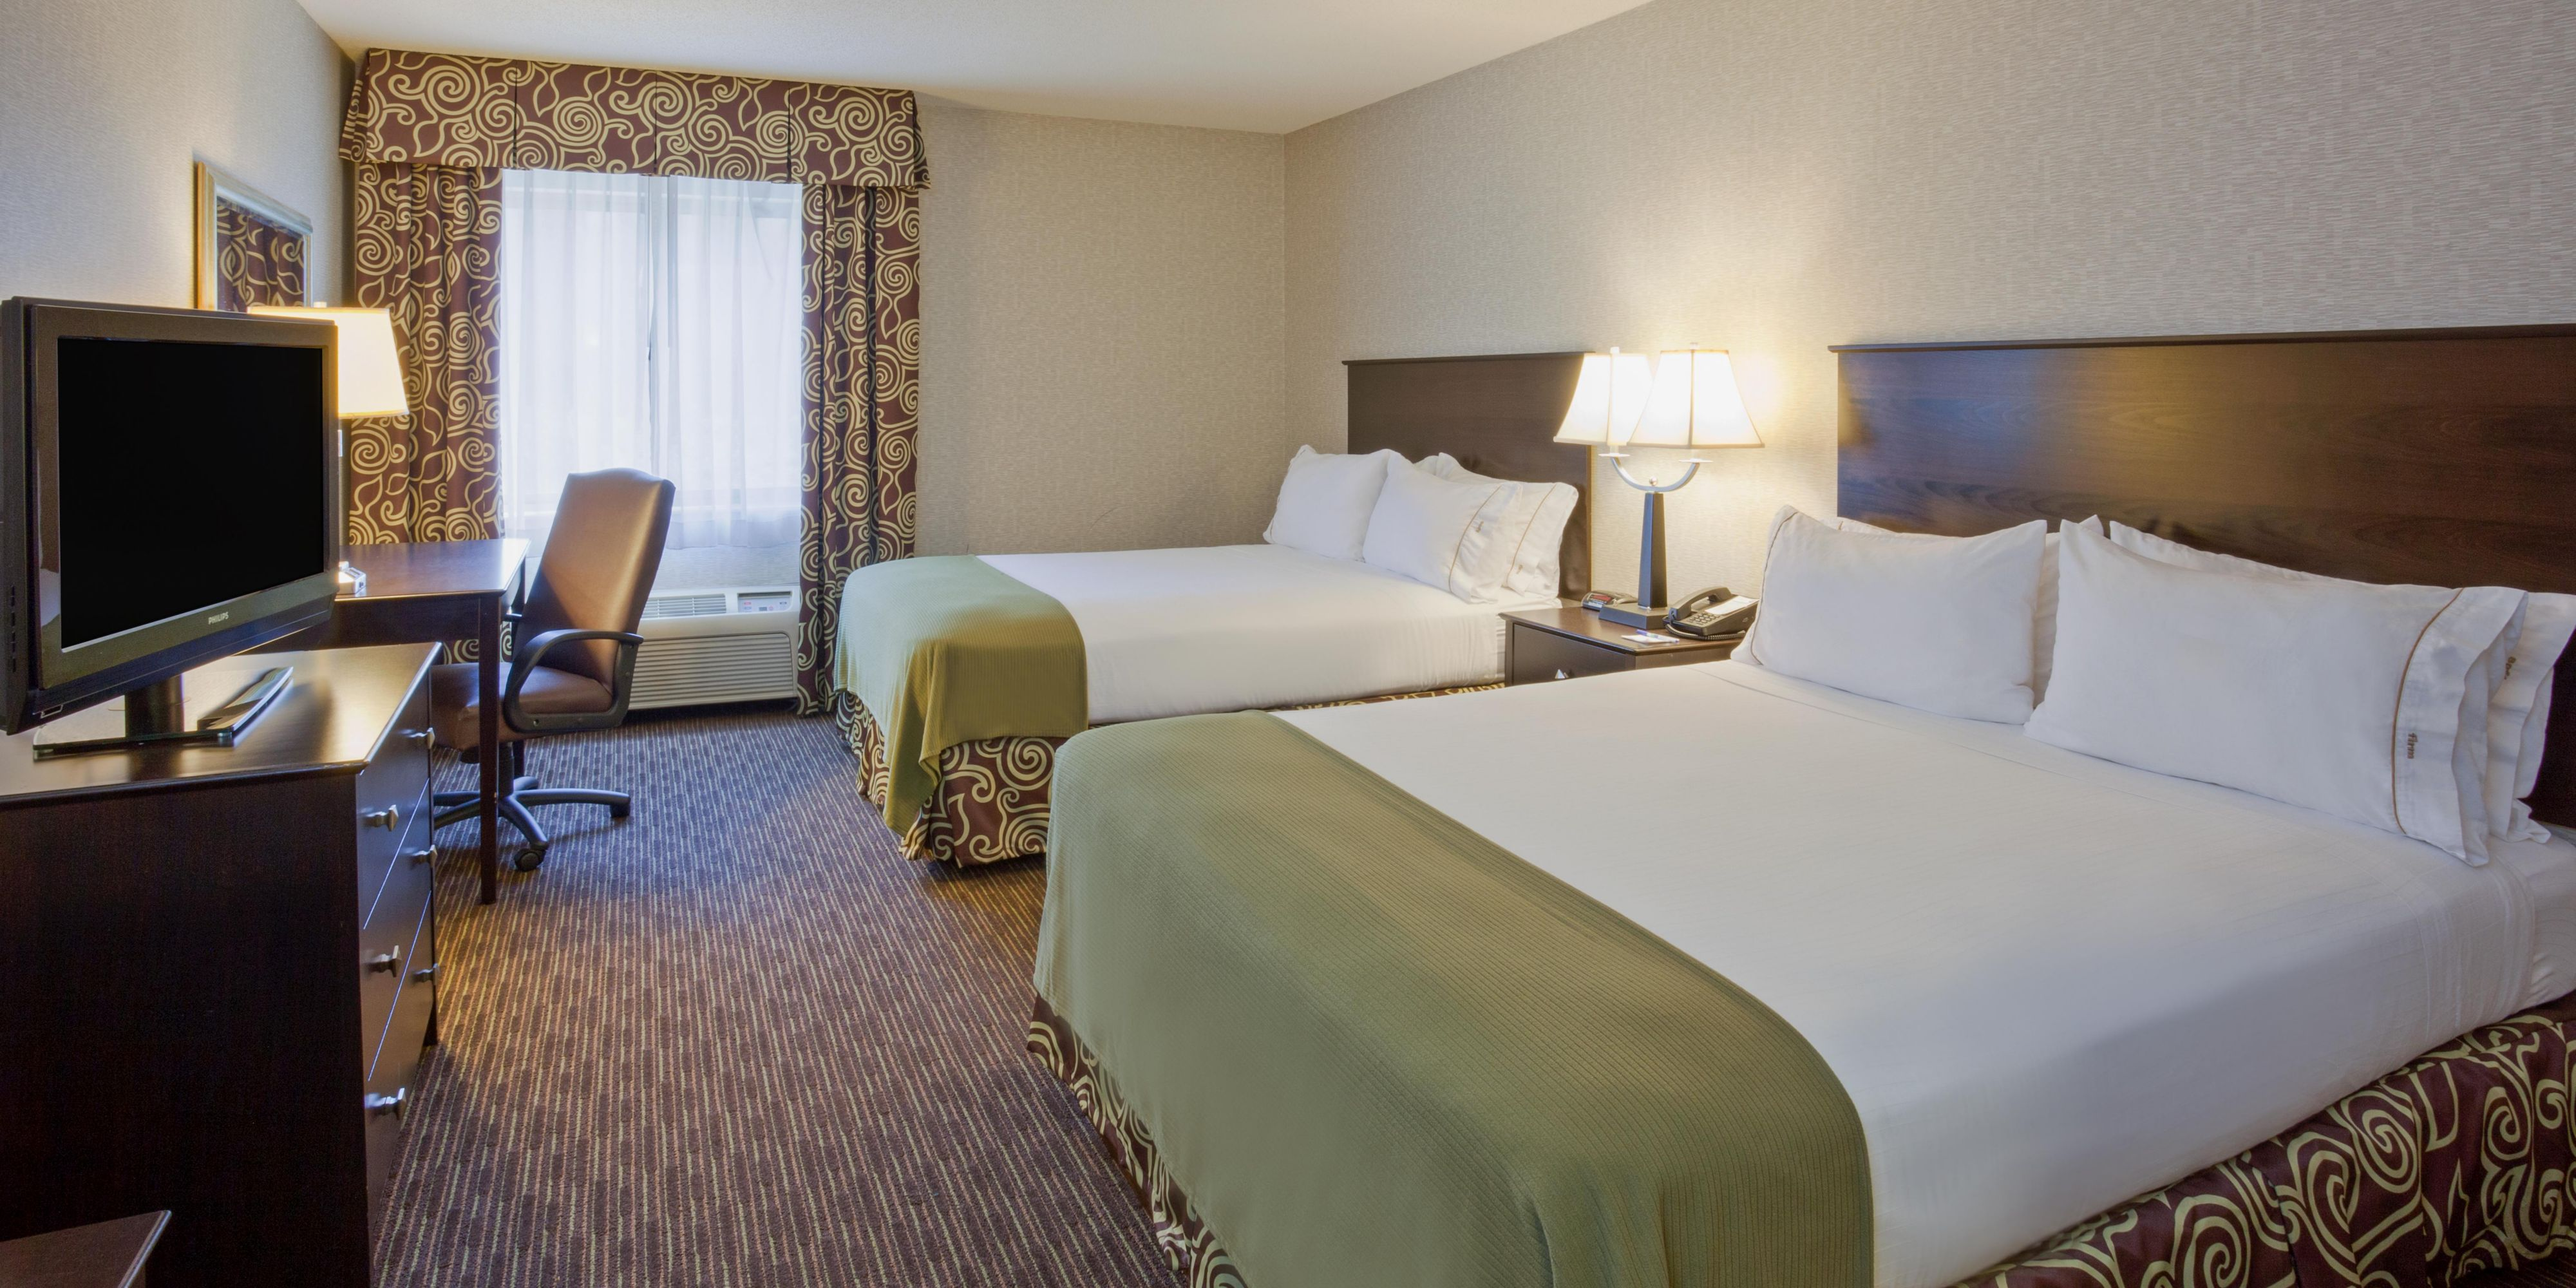 suites woodbury hotels en us st romantic hotel mspwb mn tub hoteldetail inn by and holiday hot holidayinnexpress express paul ihg